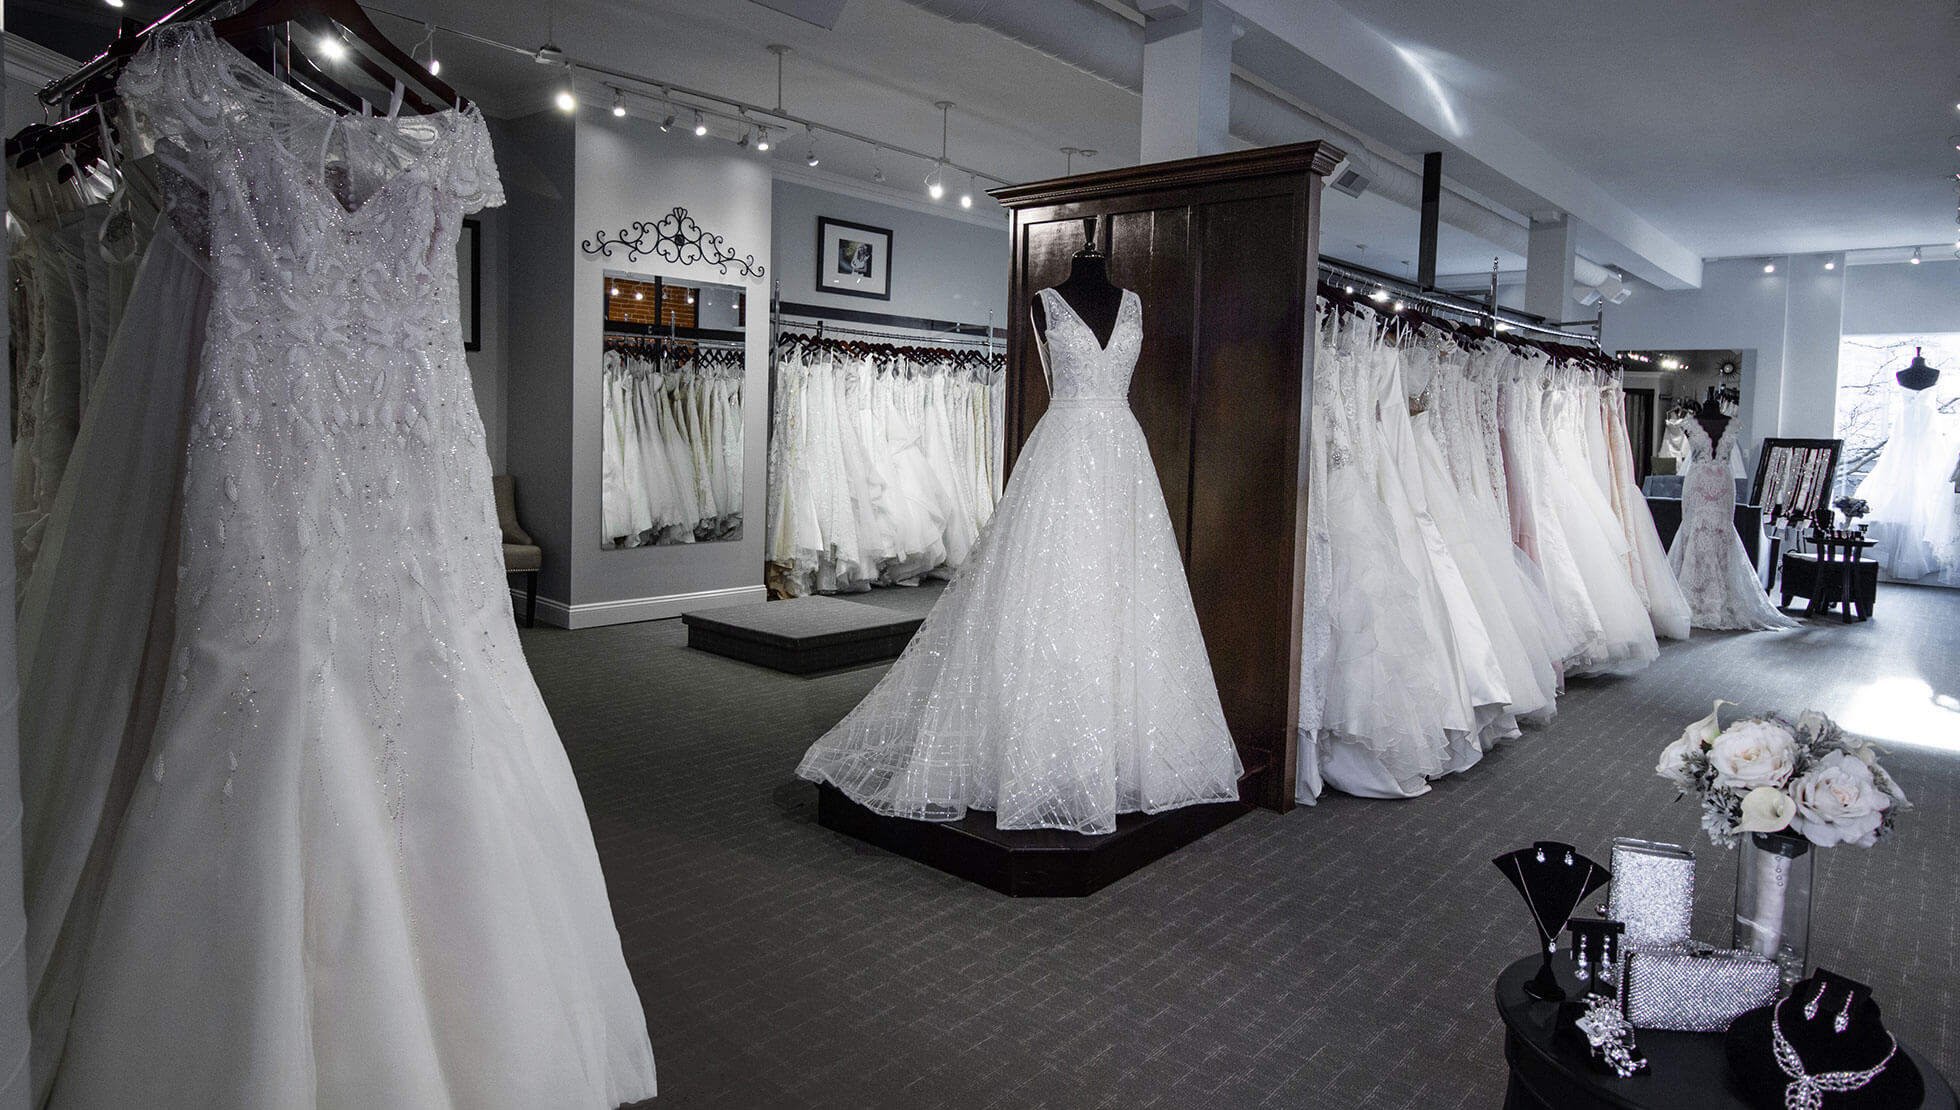 Memories' spacious bridal suite filled with wedding gowns.